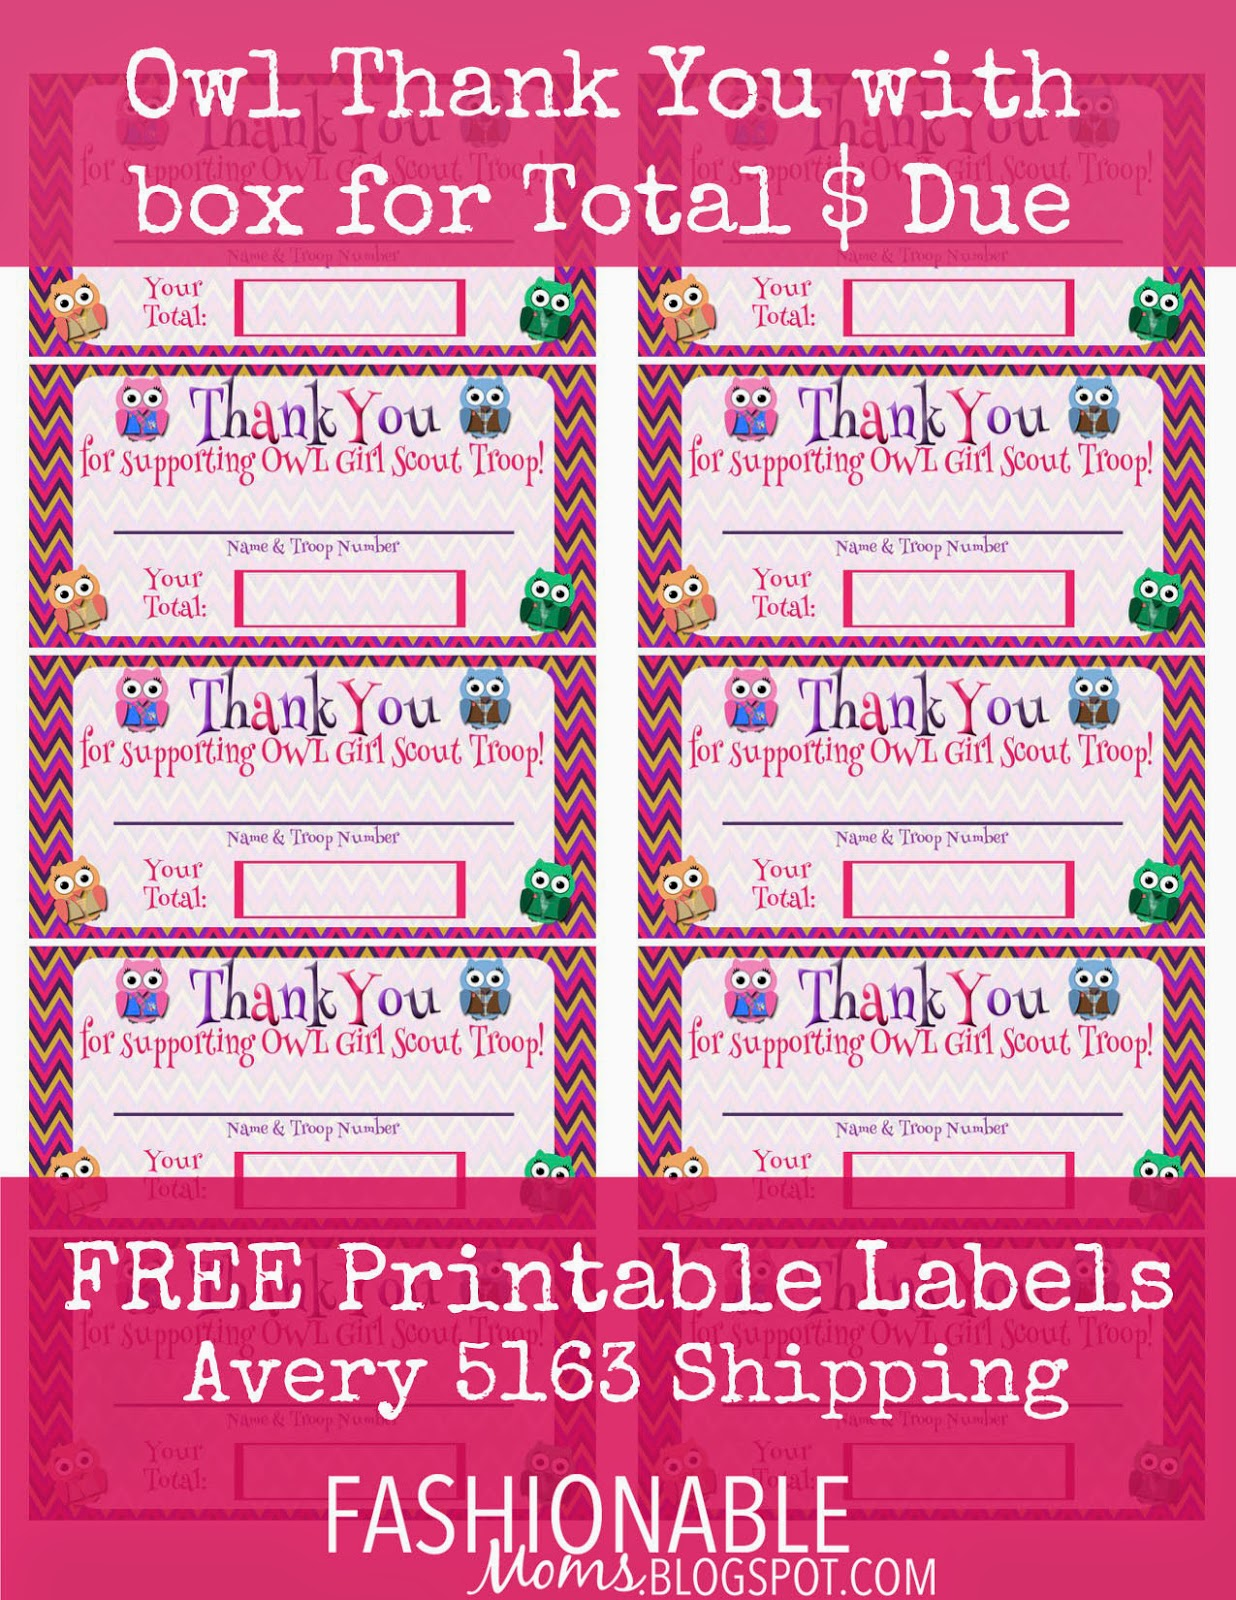 Fashionable Moms Free Printable Owl Thank You Labels